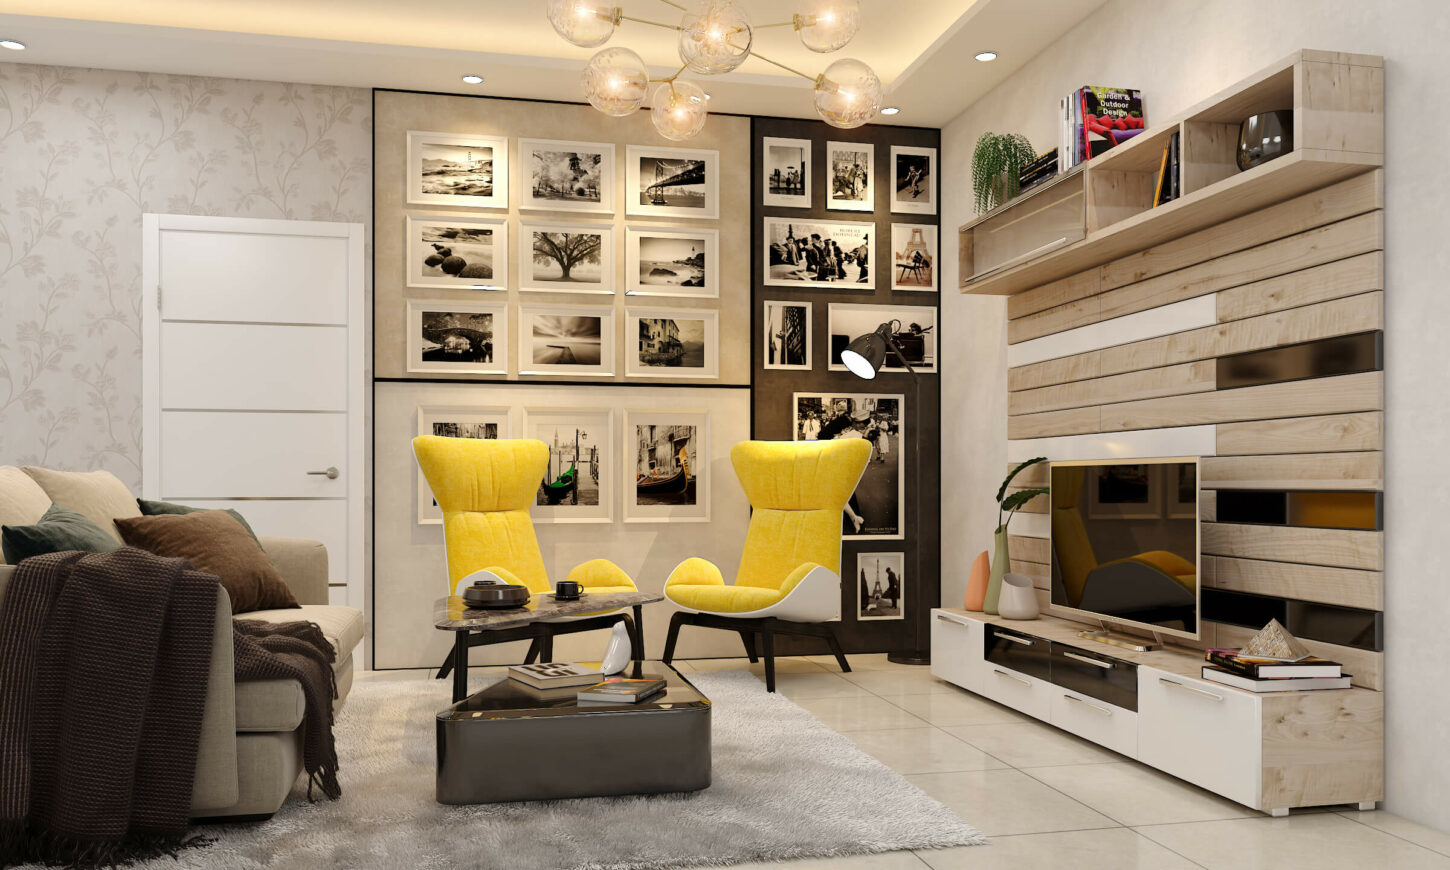 Harsh Johari Living Room Interiors Designed by Design Cafe. Recent Project from Design Cafe.